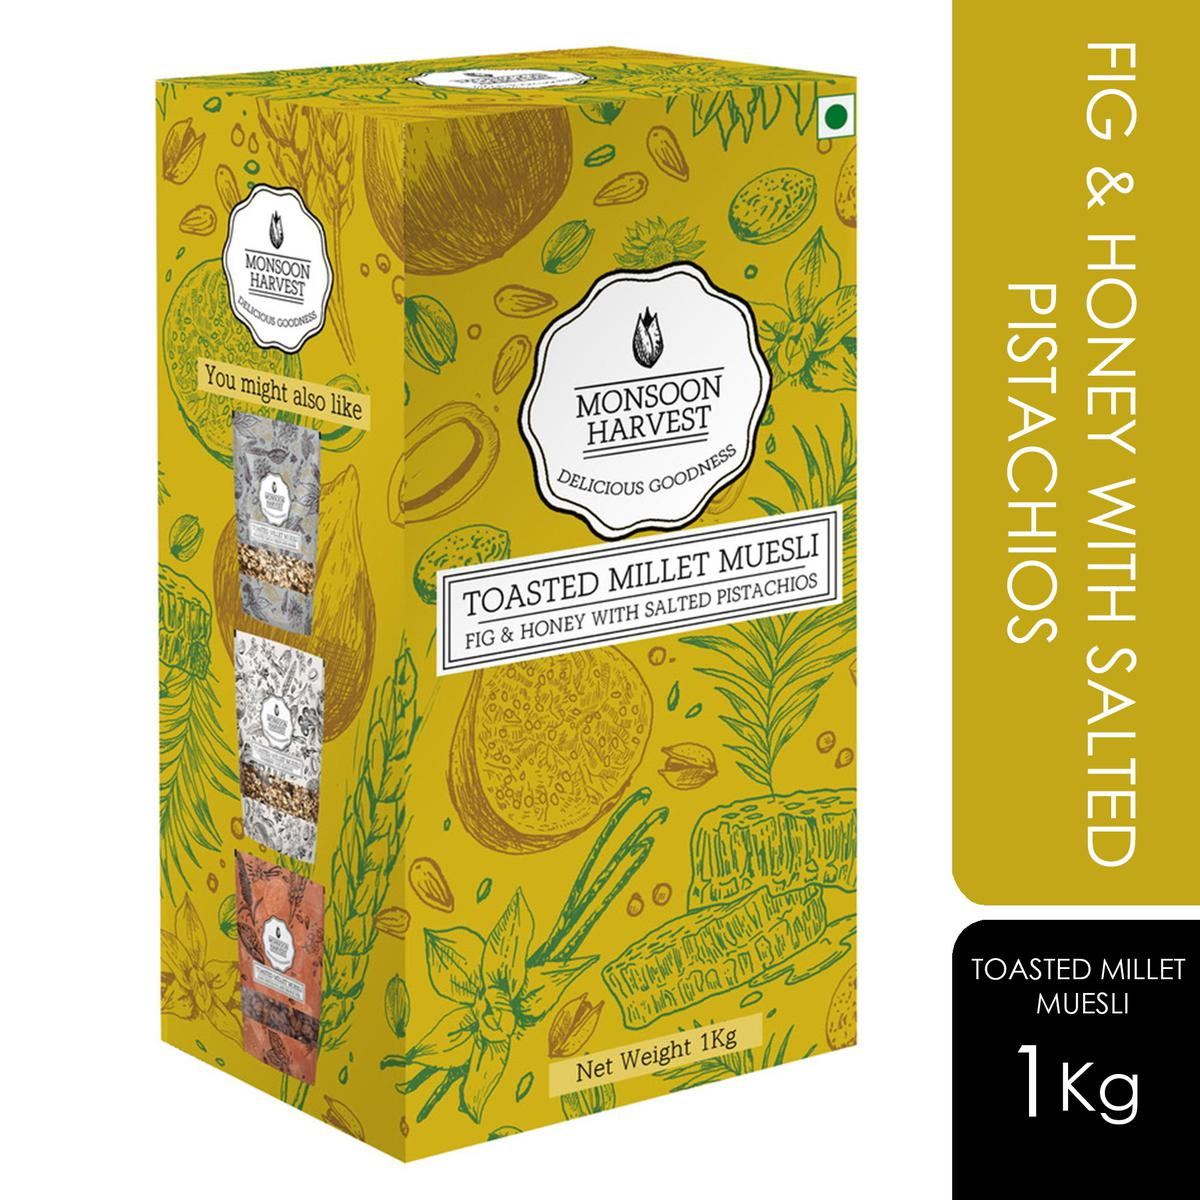 Monsoon Harvest Toasted Millet Muesli Fig & Honey with Salted Pistachios 1000gms